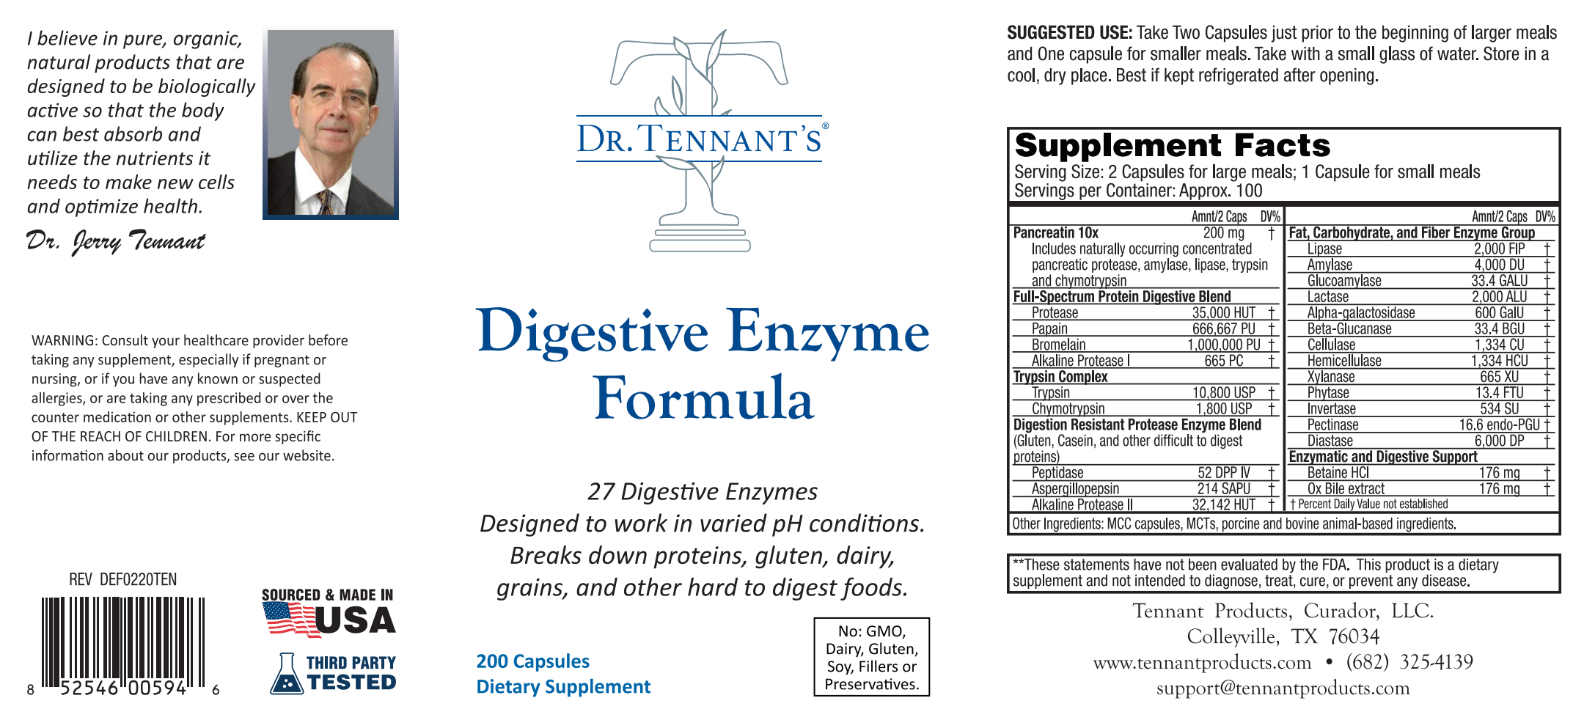 Digestive Enzyme Formula - New Batch is Here!